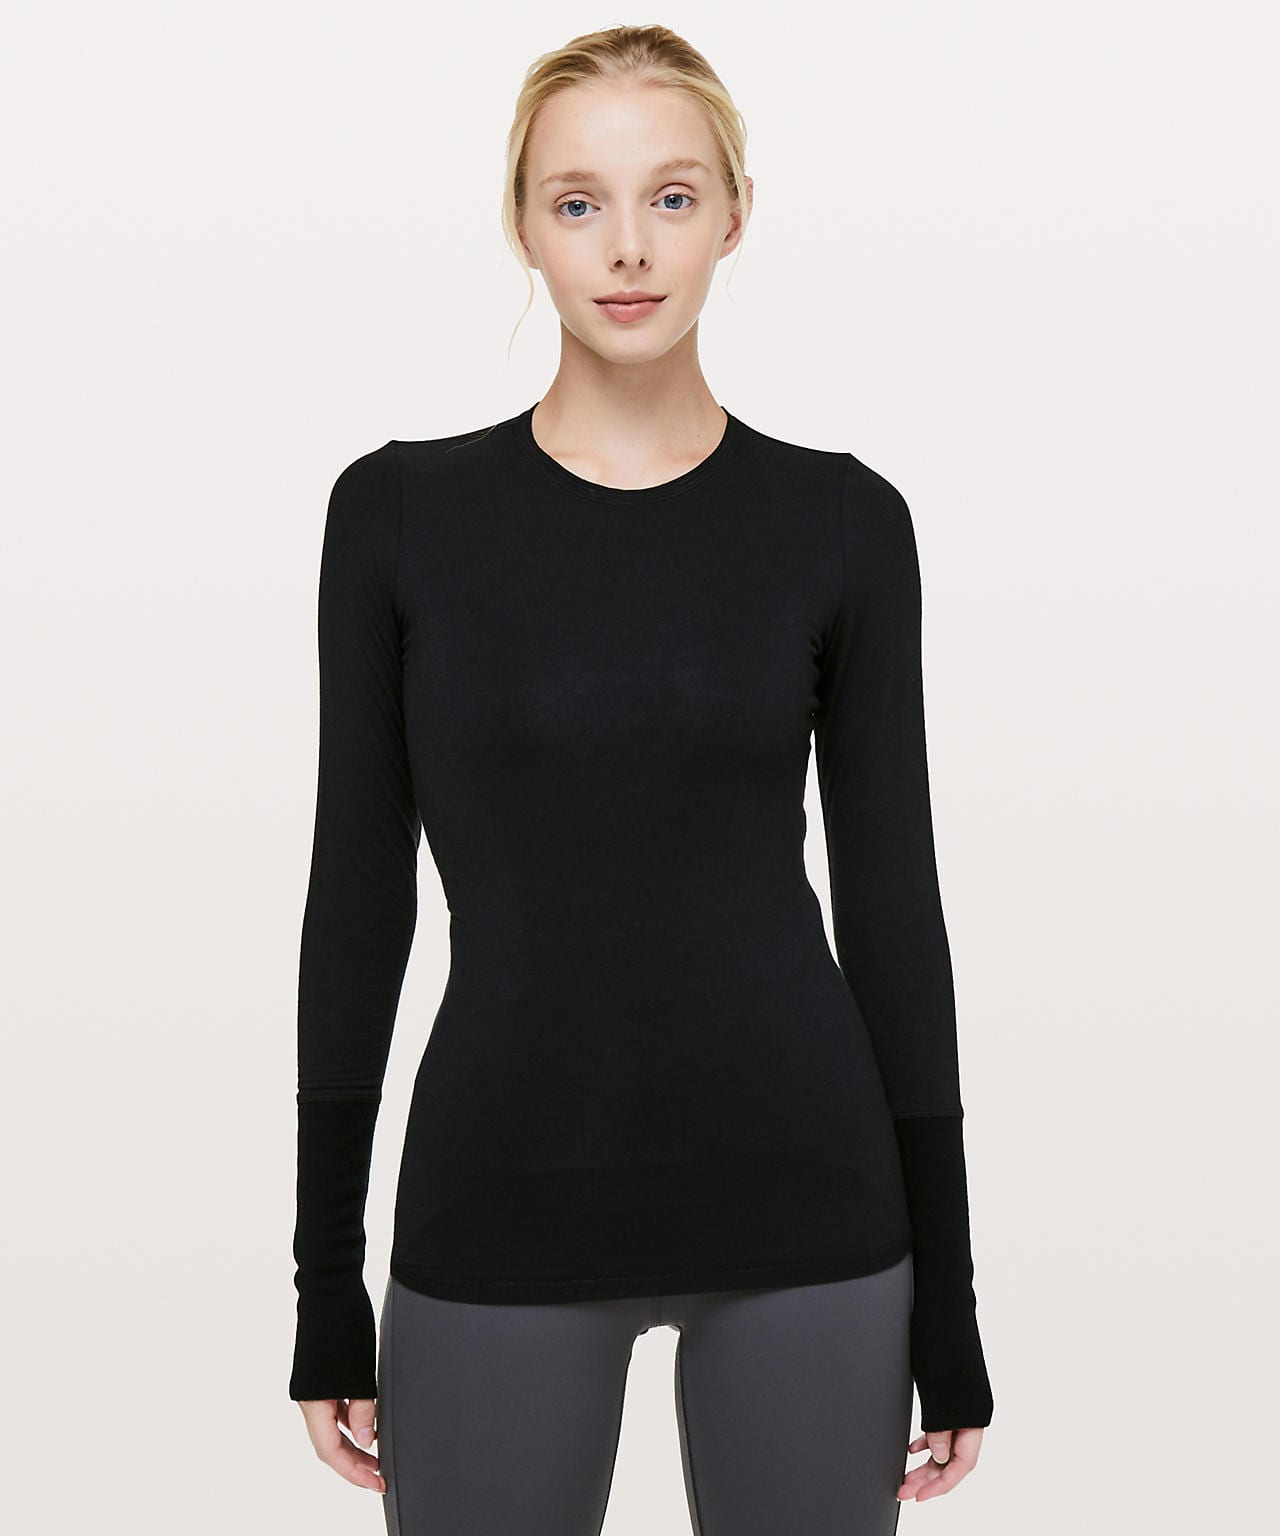 Principal Dancer Long Sleeve